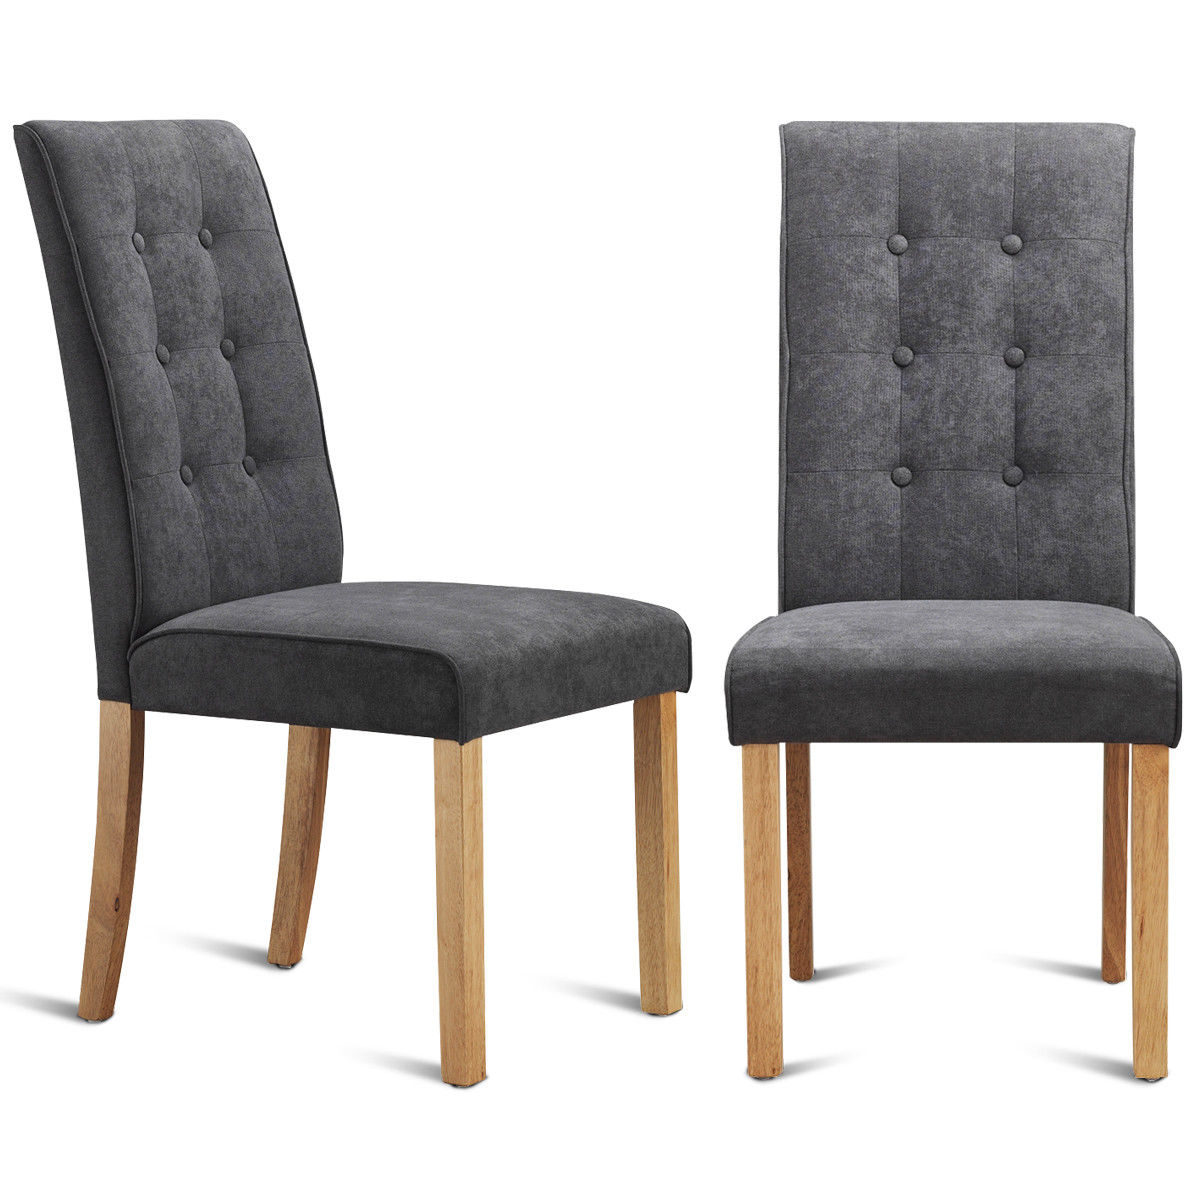 chairs kitchen aid toasters gymax set of 2 dining side upholstered fabric button tufted wooden legs qty